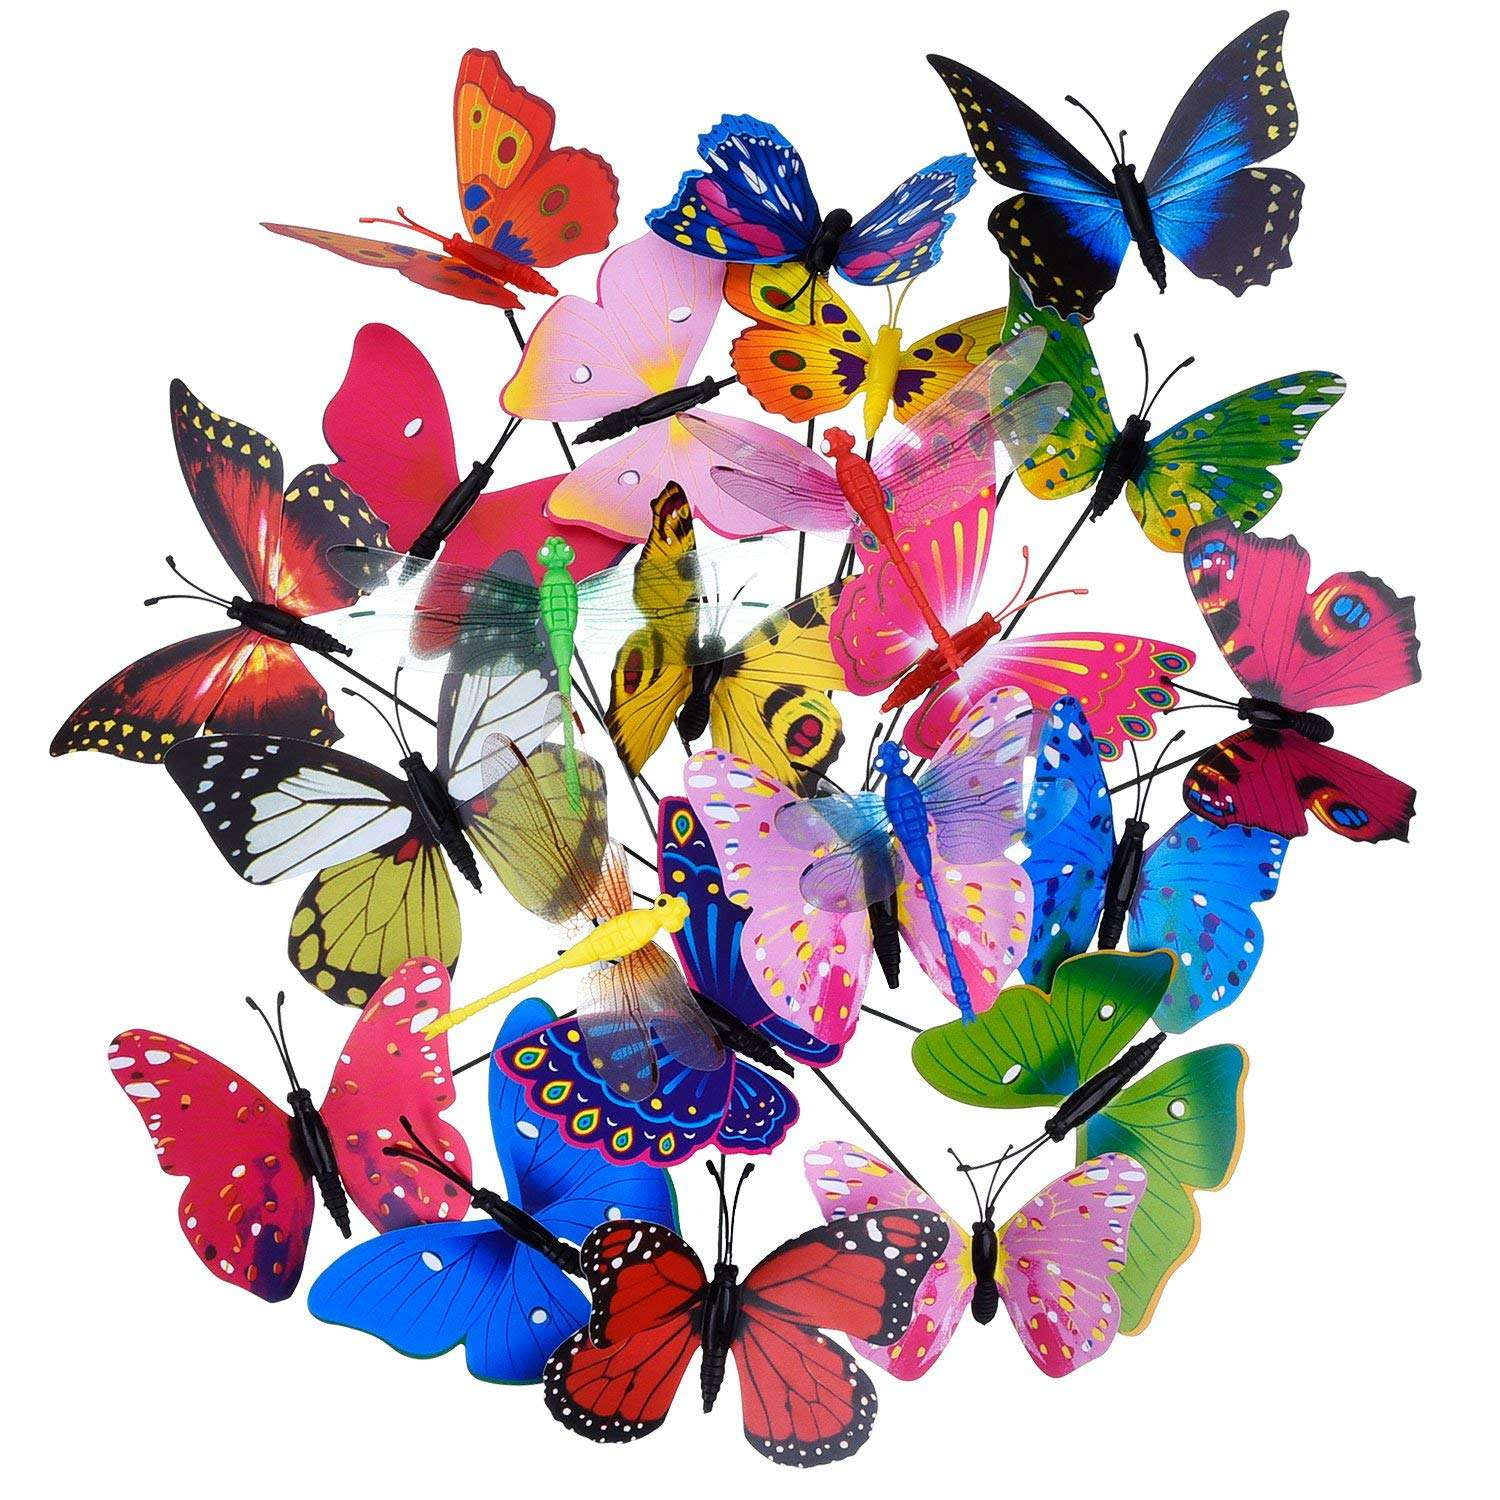 20 Pieces Garden Butterflies Stakes And 4 Pieces Dragonflies Stakes Garden Ornaments For Yard Patio Party Decorations, Totally